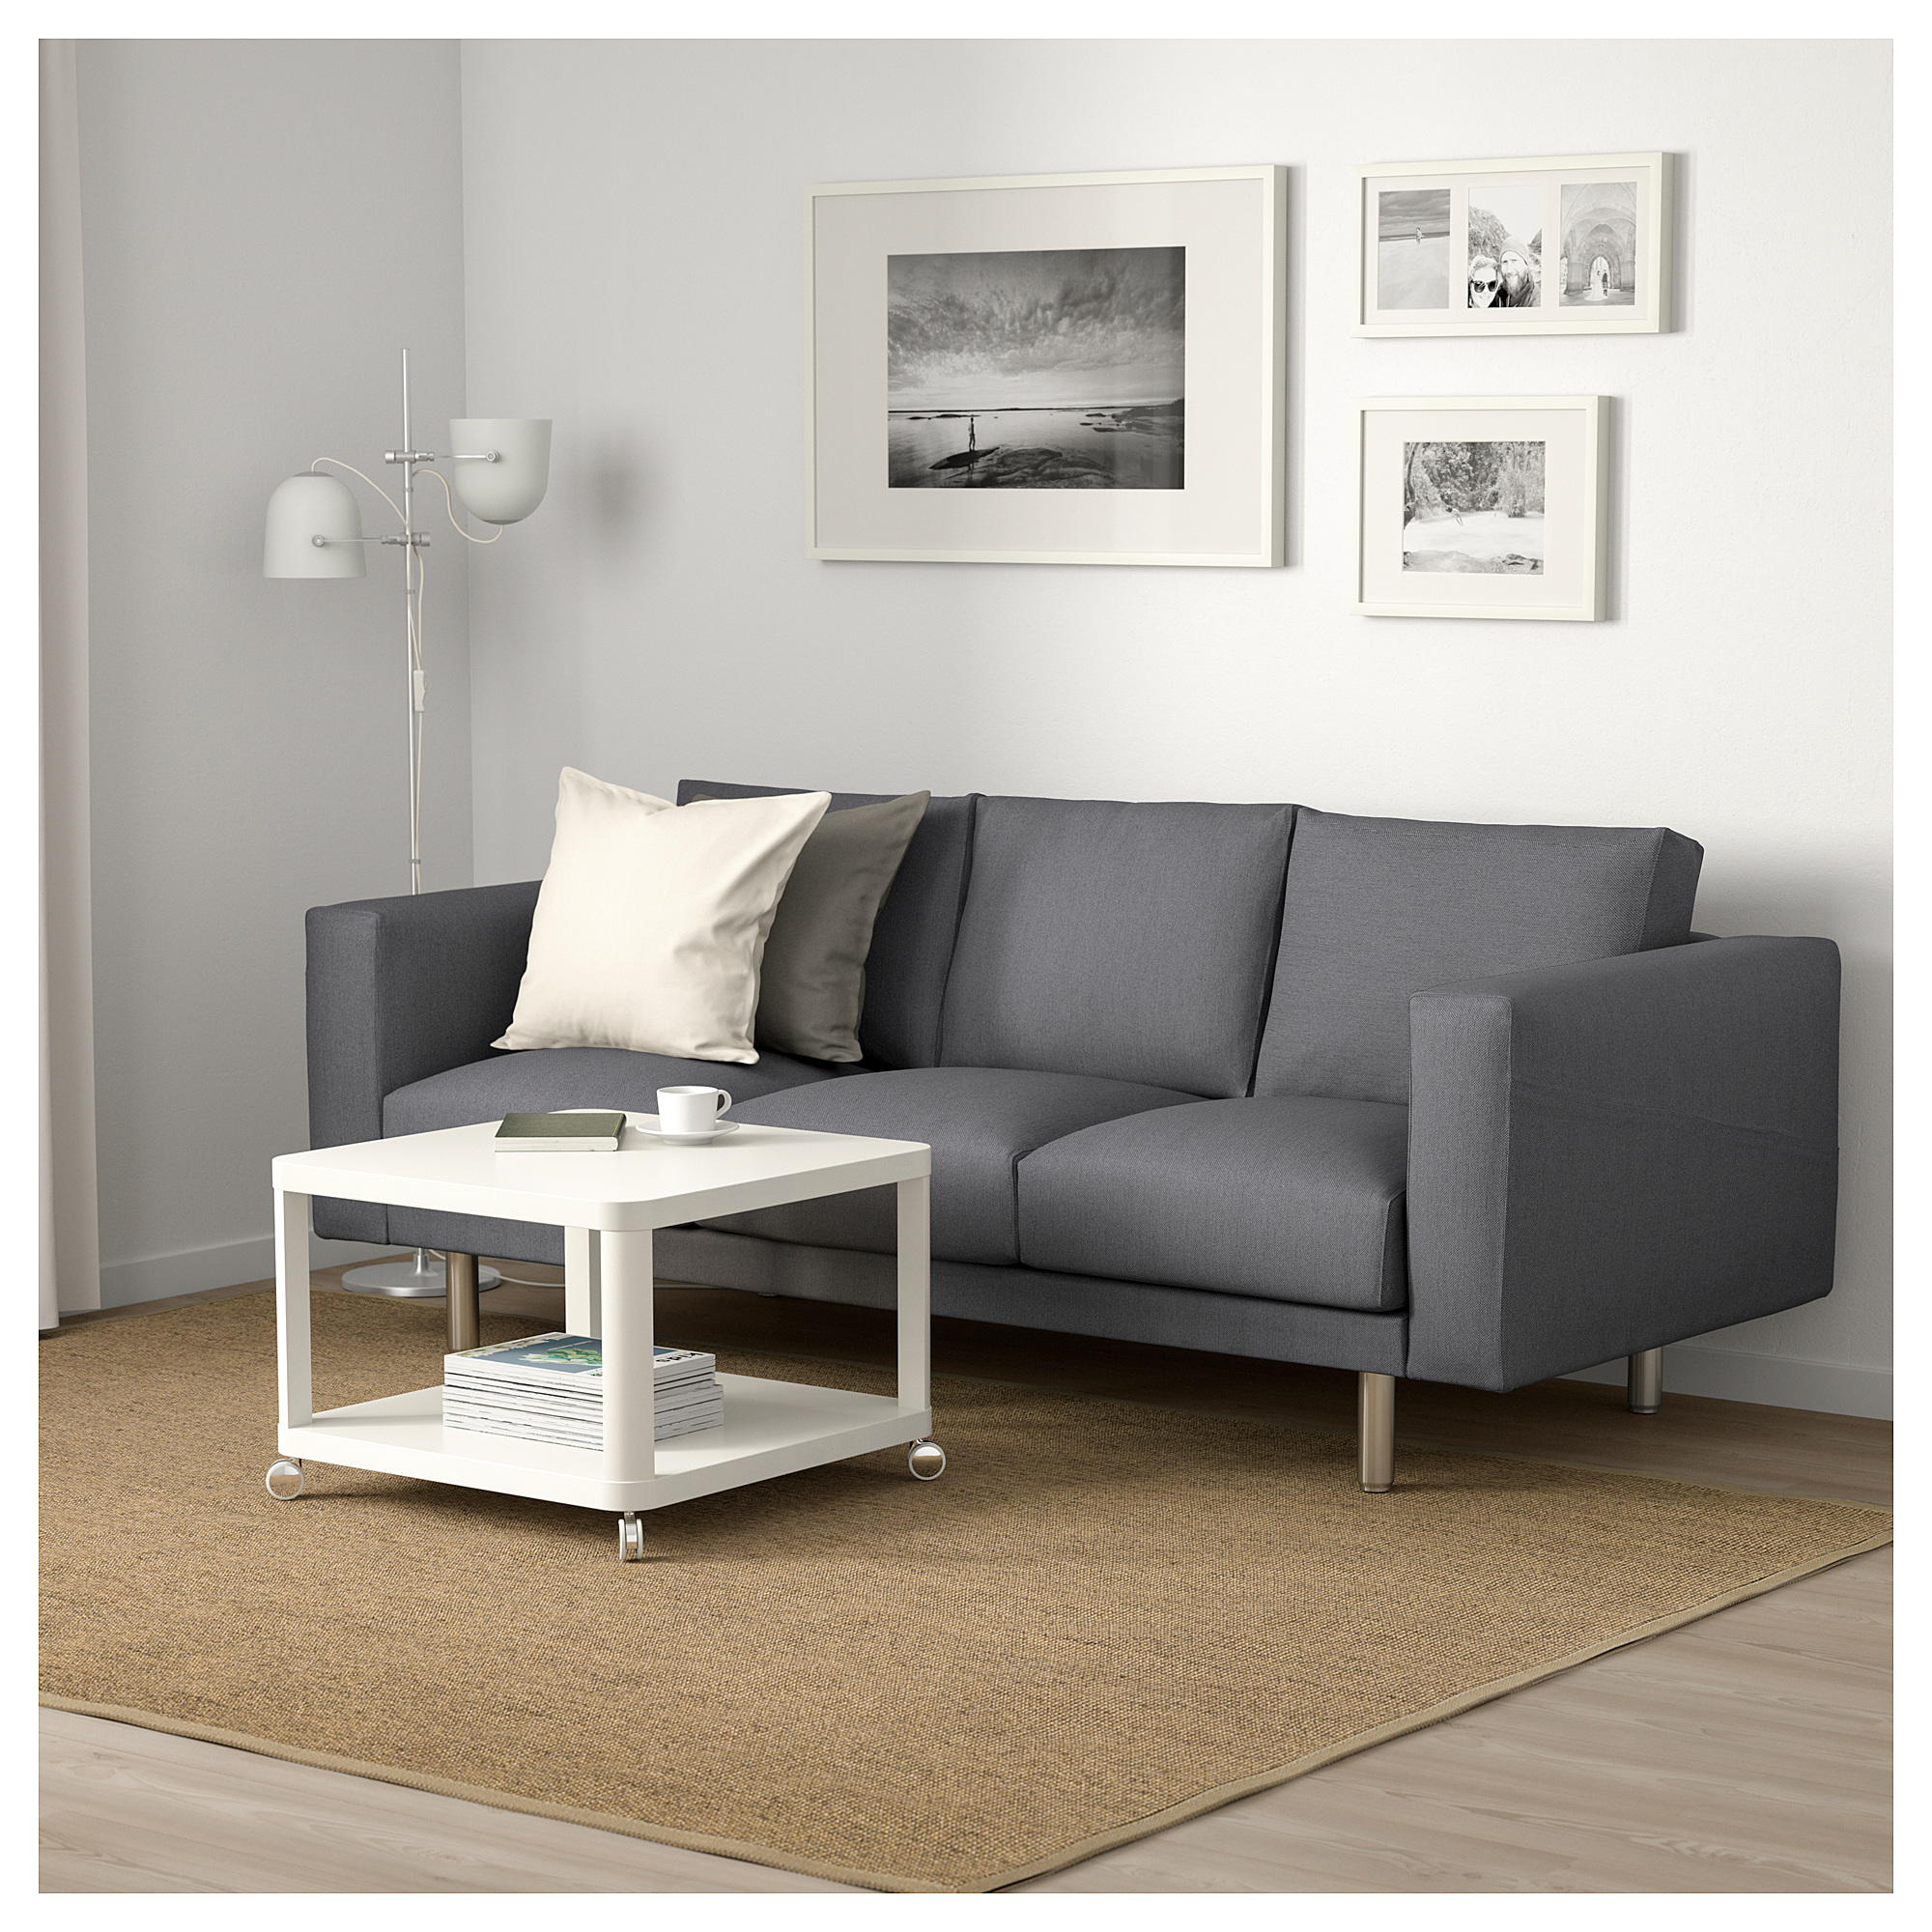 Nice Cheap Living Room Furniture. The Norsborg sofa  seen here in Finnsta dark grey with metal legs Ikea Where to buy affordable home essentials Curbed